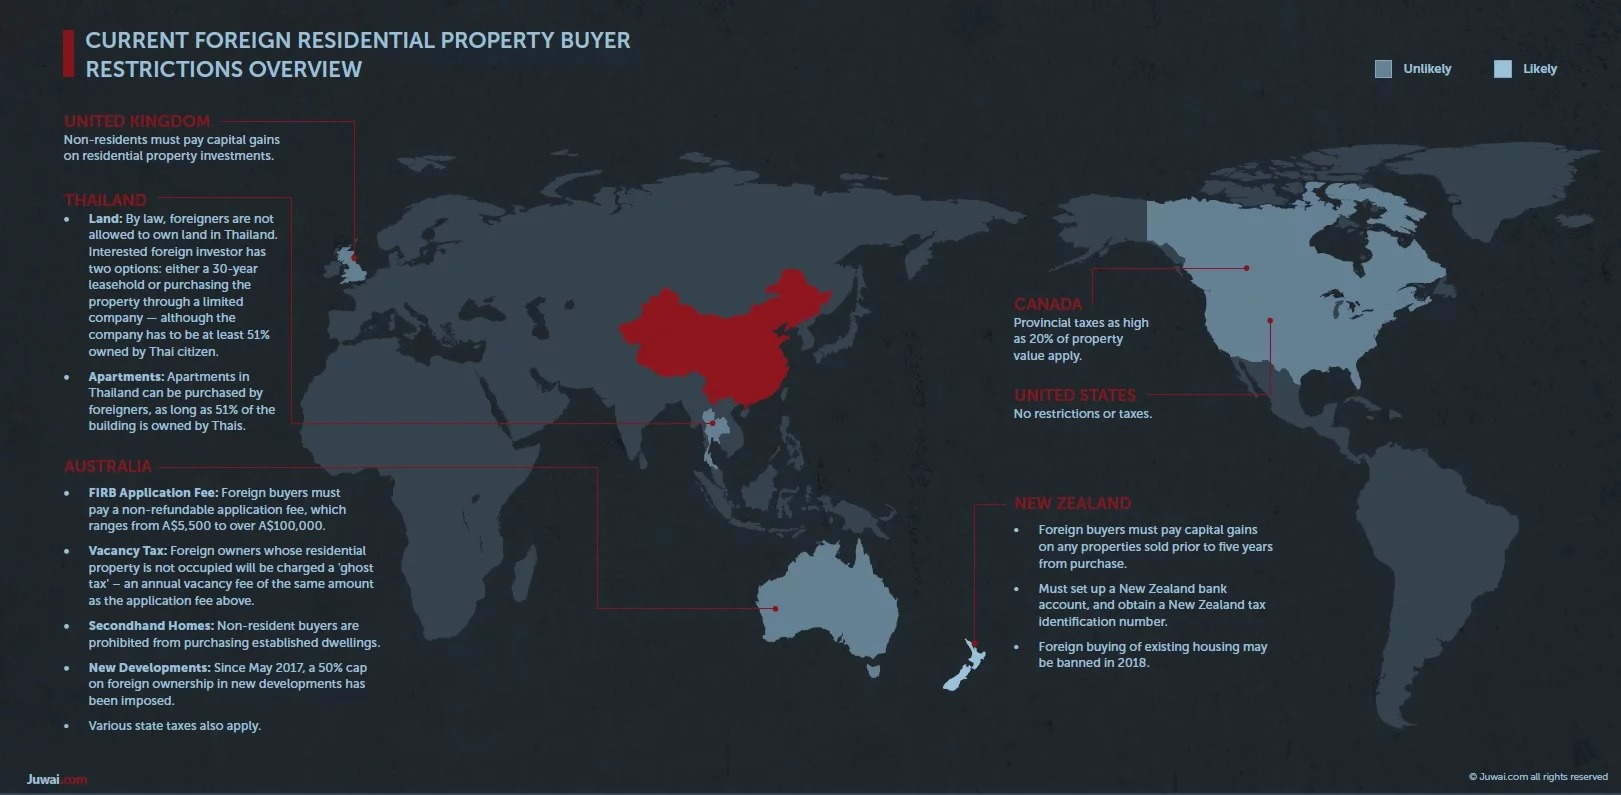 Chinese property website Juwai.com's overview of the current foreign investment restrictions currently in place globally.